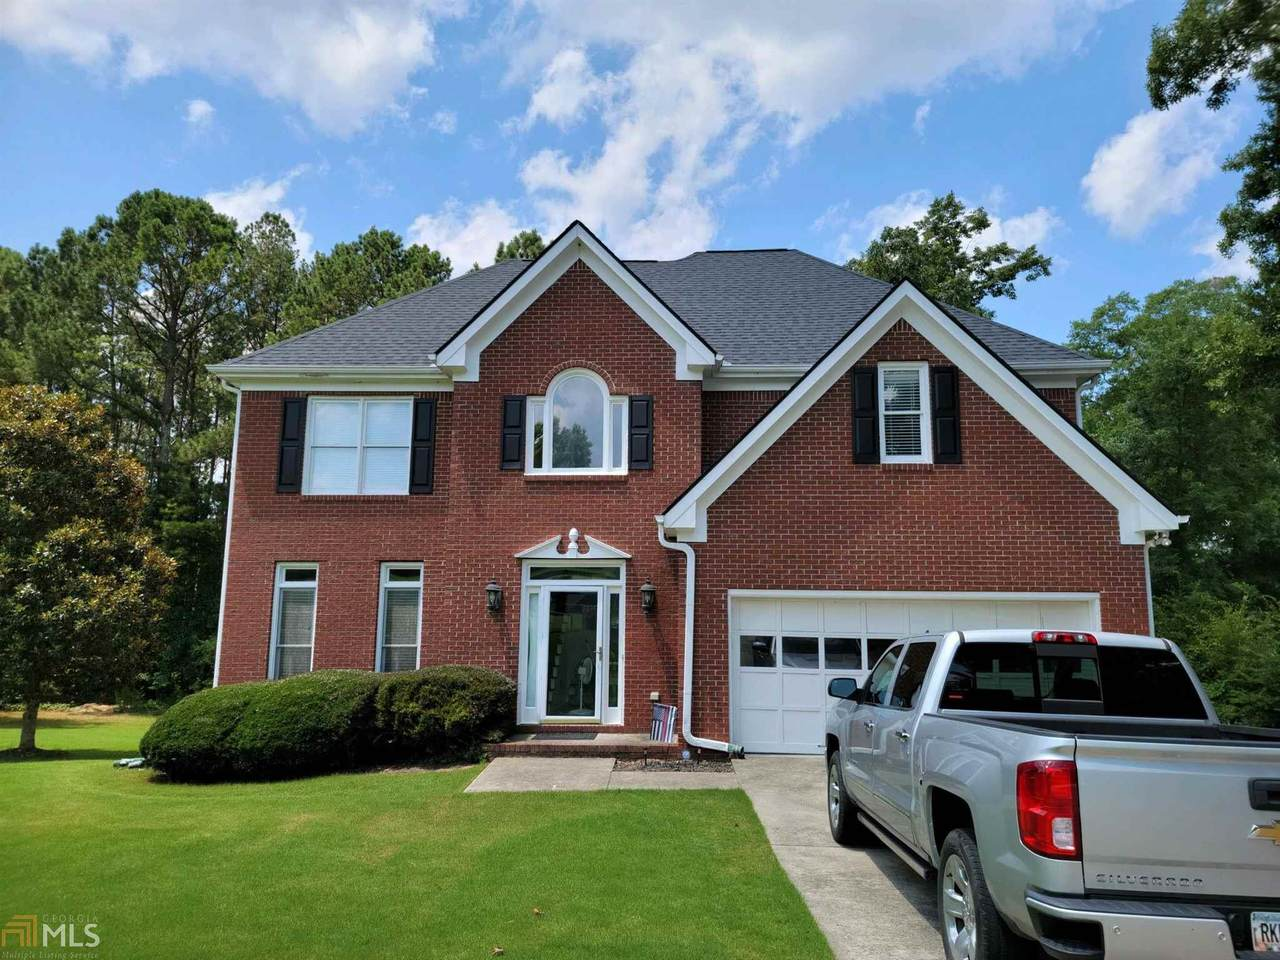 5464 Mccullers Ln - Photo 1